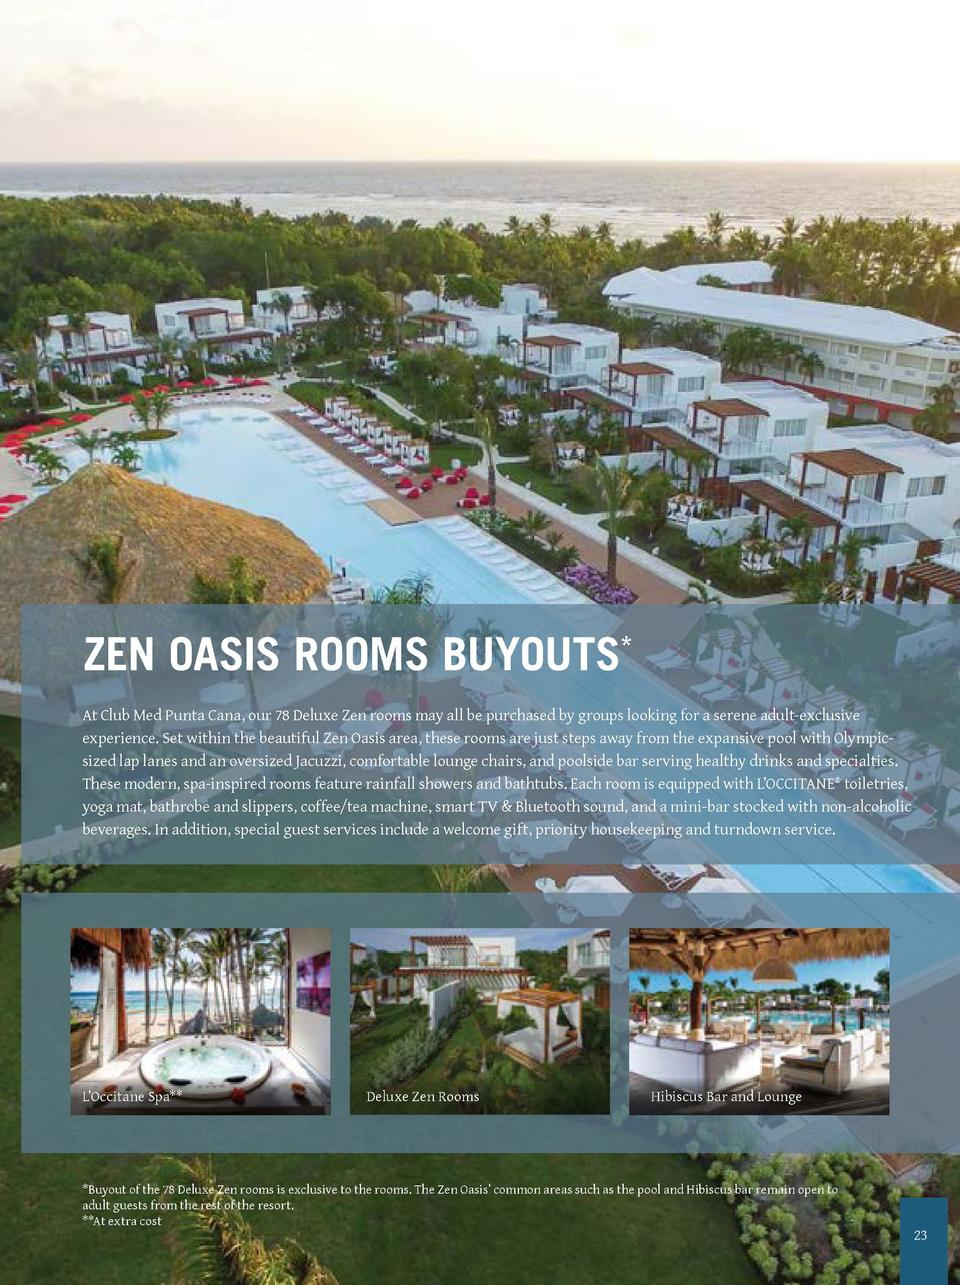 ZEN OASIS ROOMS BUYOUTS  At Club Med Punta Cana, our 78 Deluxe Zen rooms may all be purchased by groups looking for a sere...